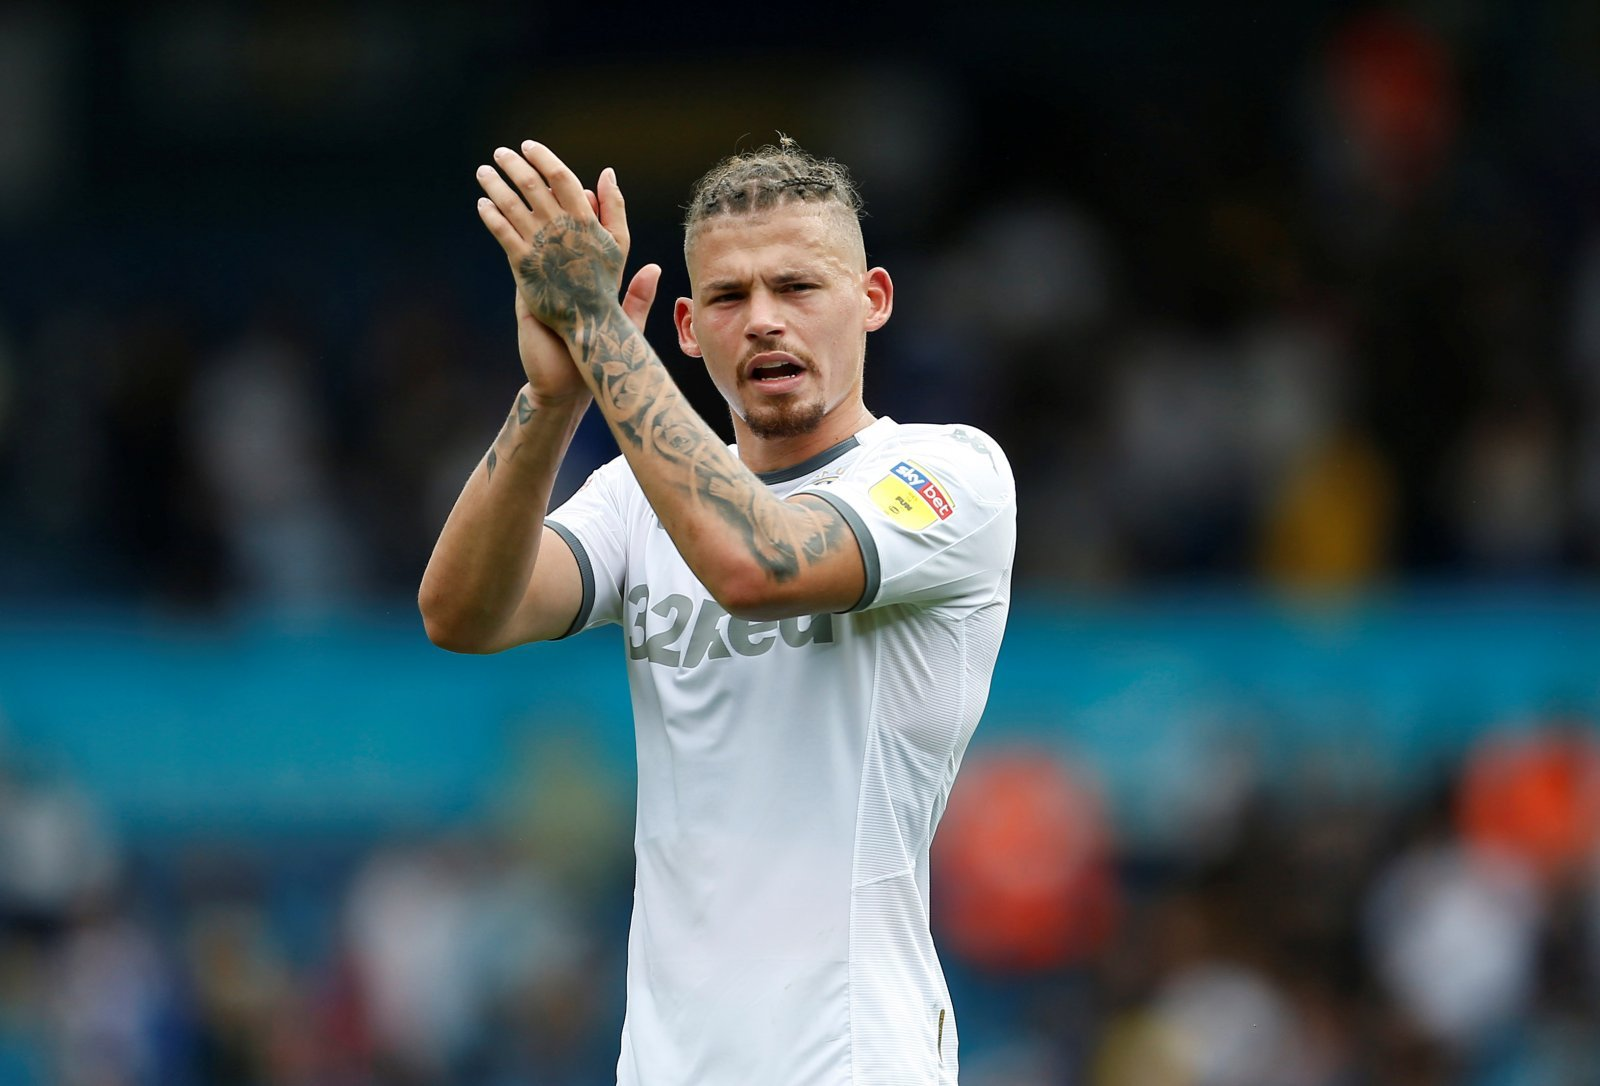 Aston Villa: Offer for Kalvin Phillips was turned down in the summer